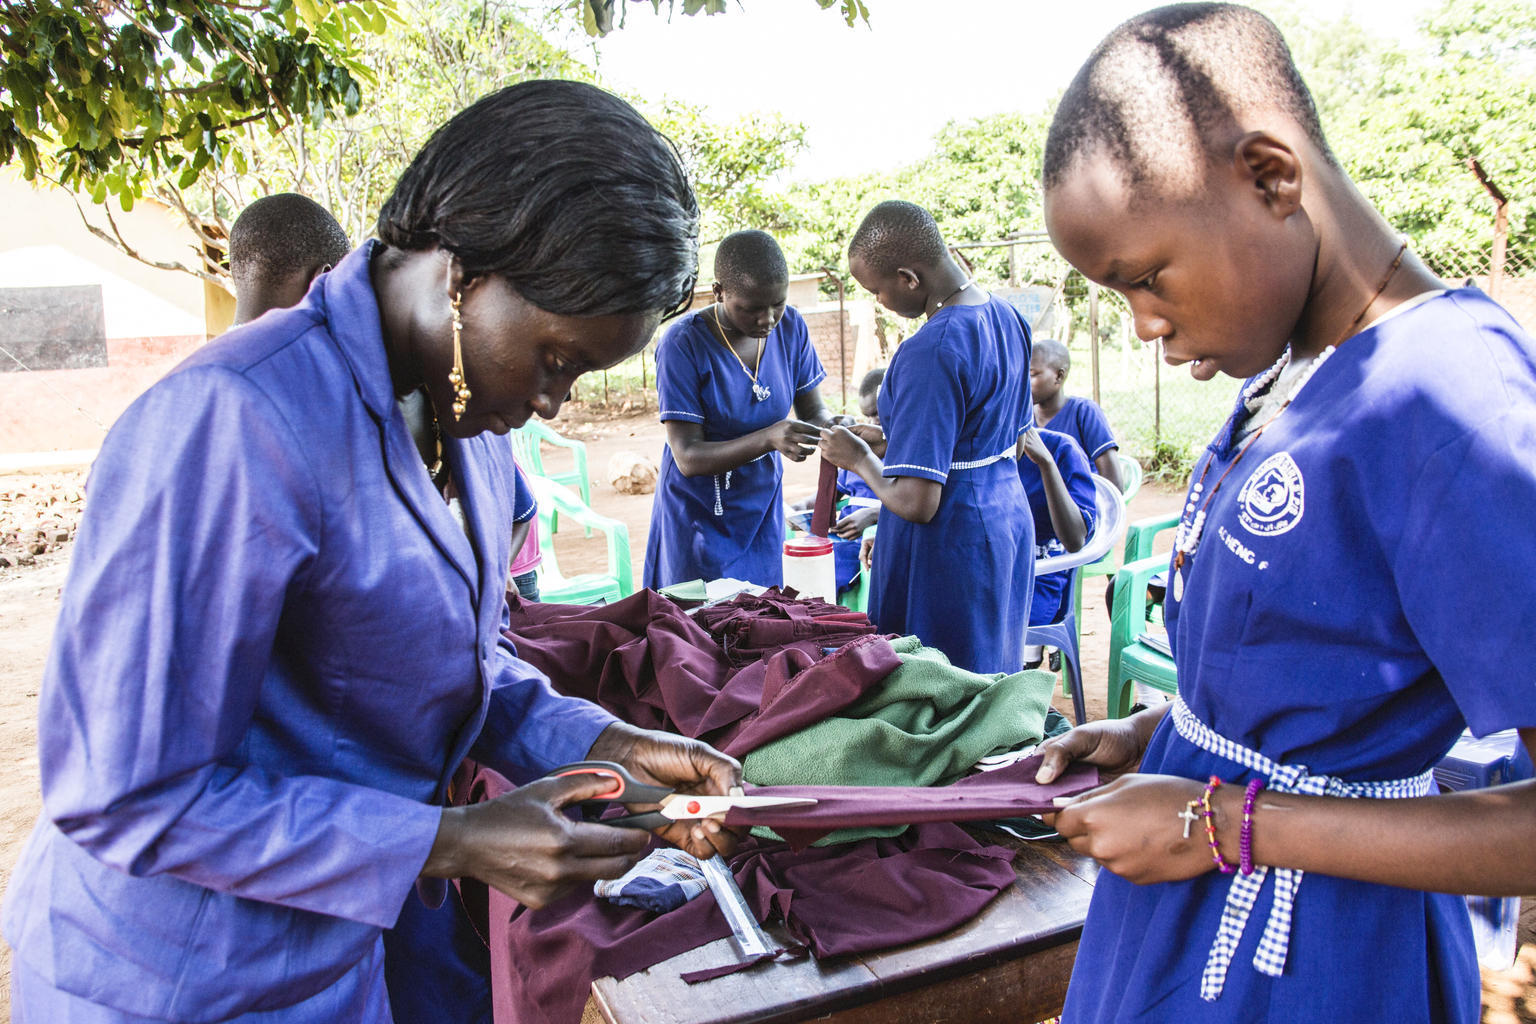 Rose Akol (left) the Senior Woman Teacher of Morulem Girls Primary Schools, demonstrates to members of the school club of Morulem Girls Primary School in Abim District in Uganda, how to make reusable pads. This activity was one of many supported by UNICEF